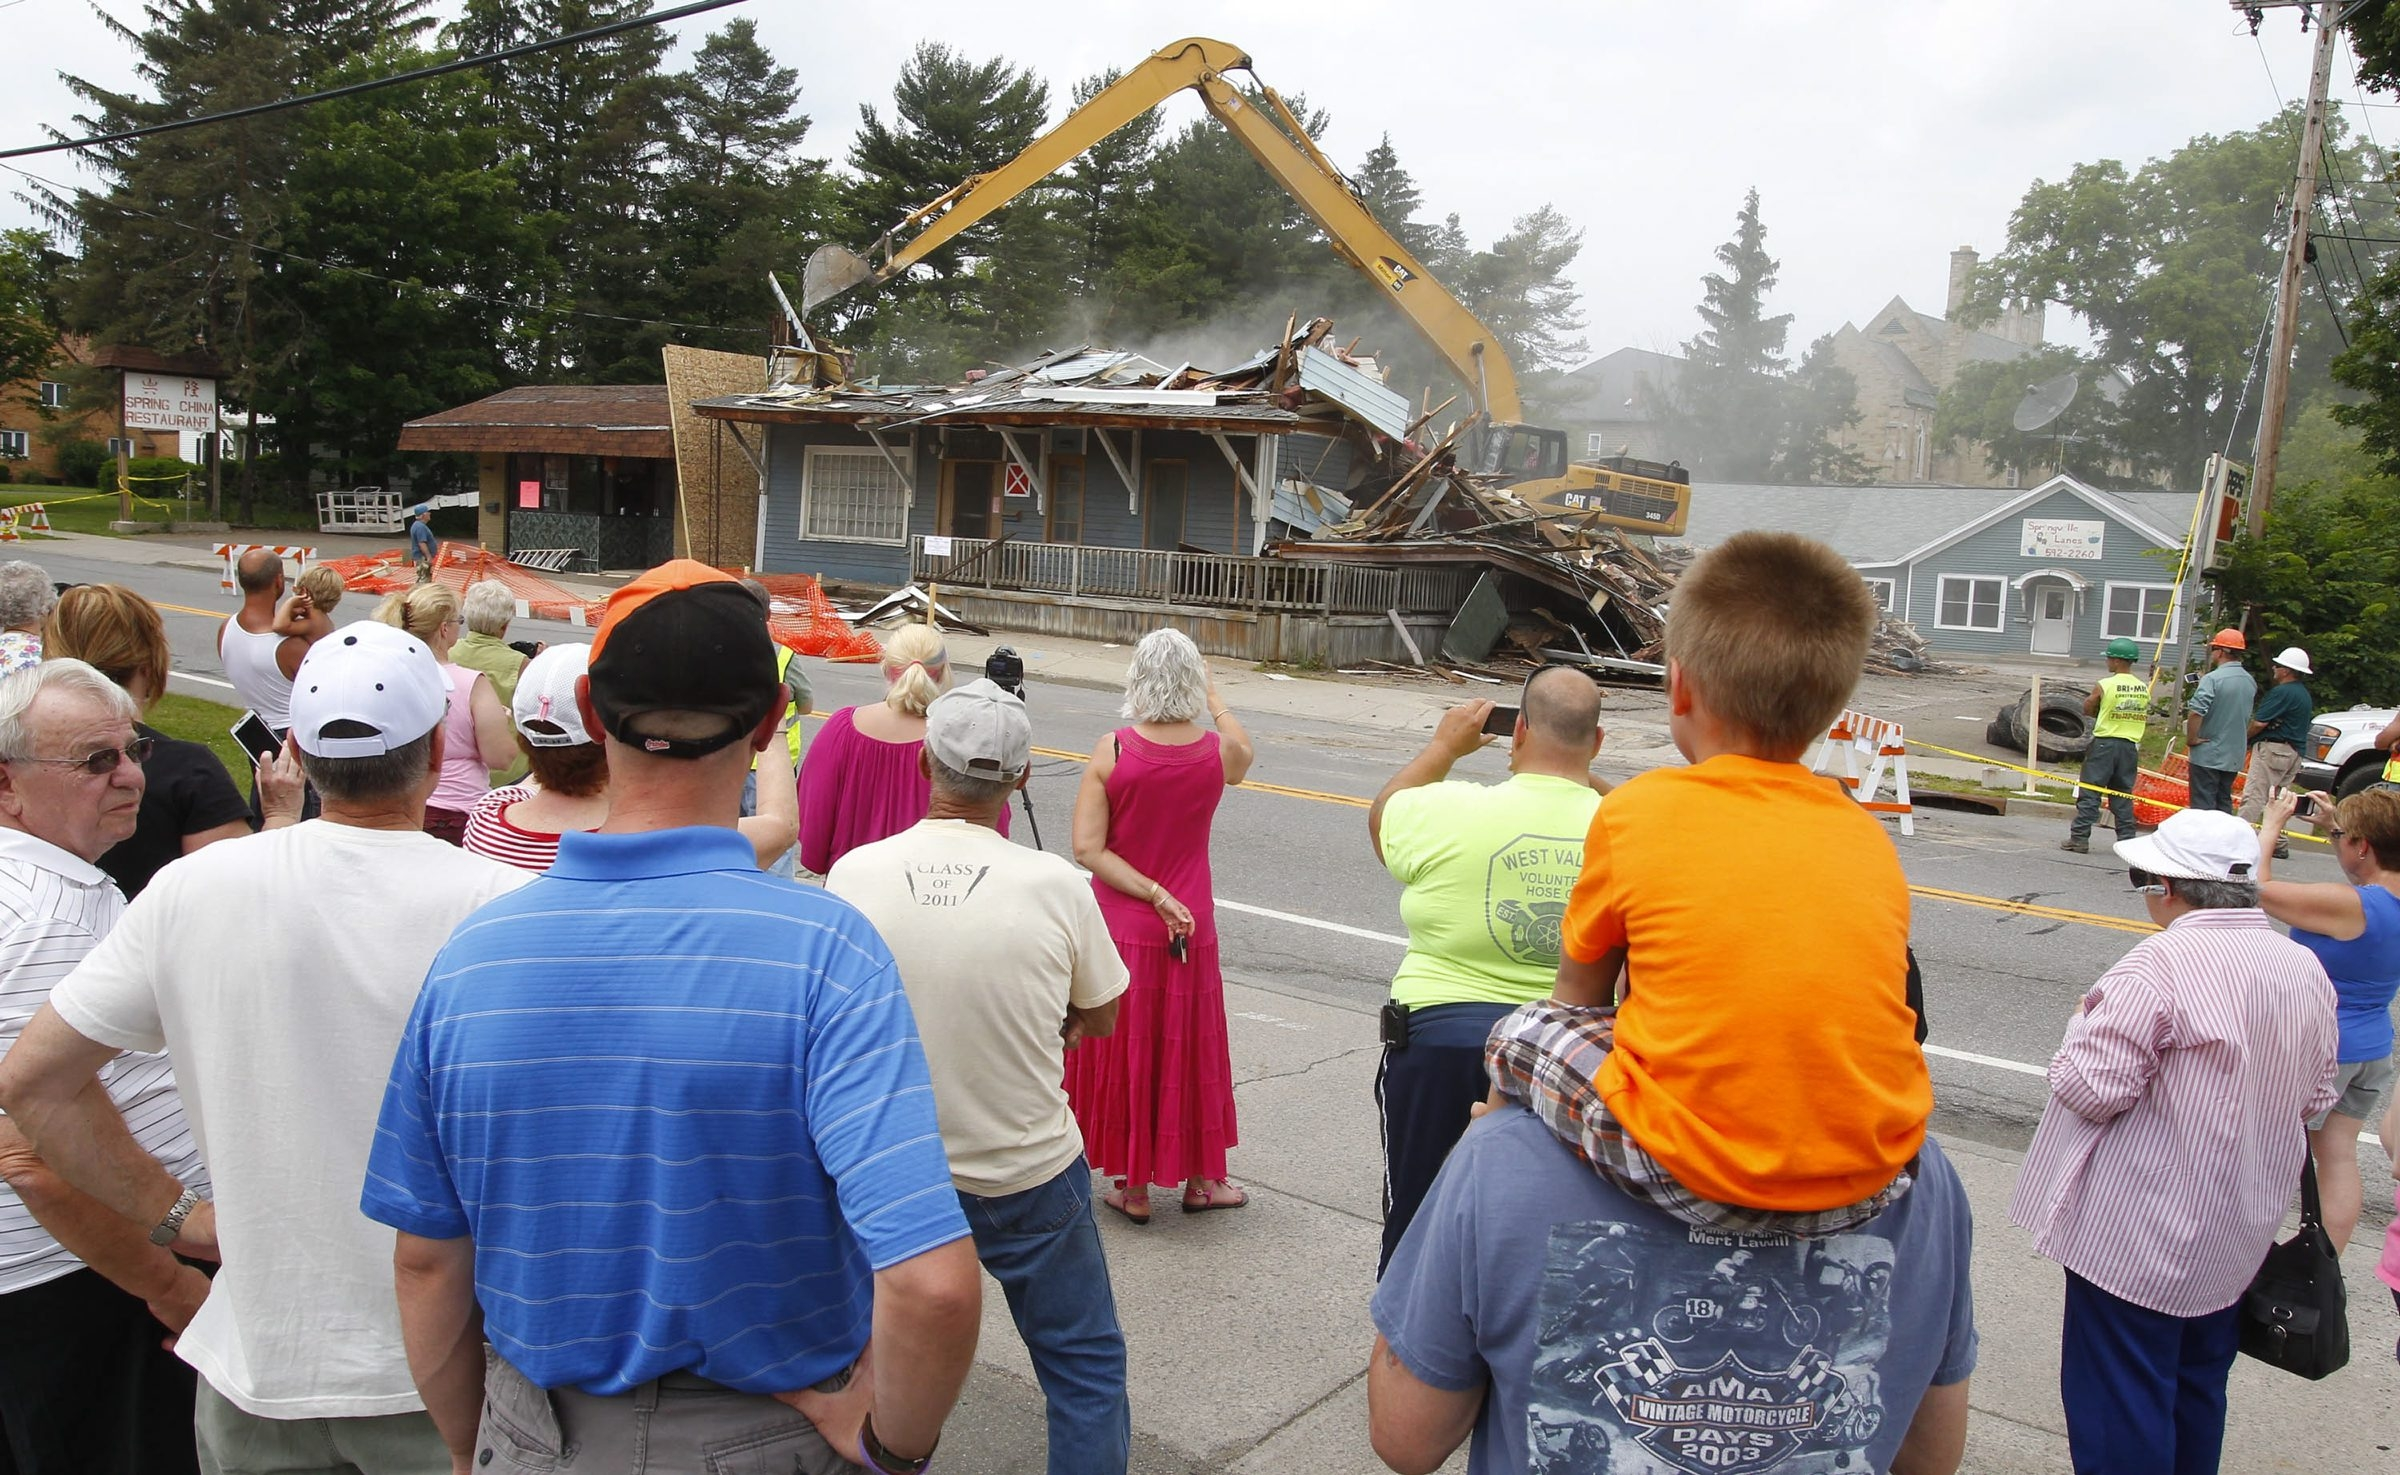 Residents gather Saturday to watch workers demolish the former Springville Hotel, whose walls and floors were near collapse, prompting its demolition.